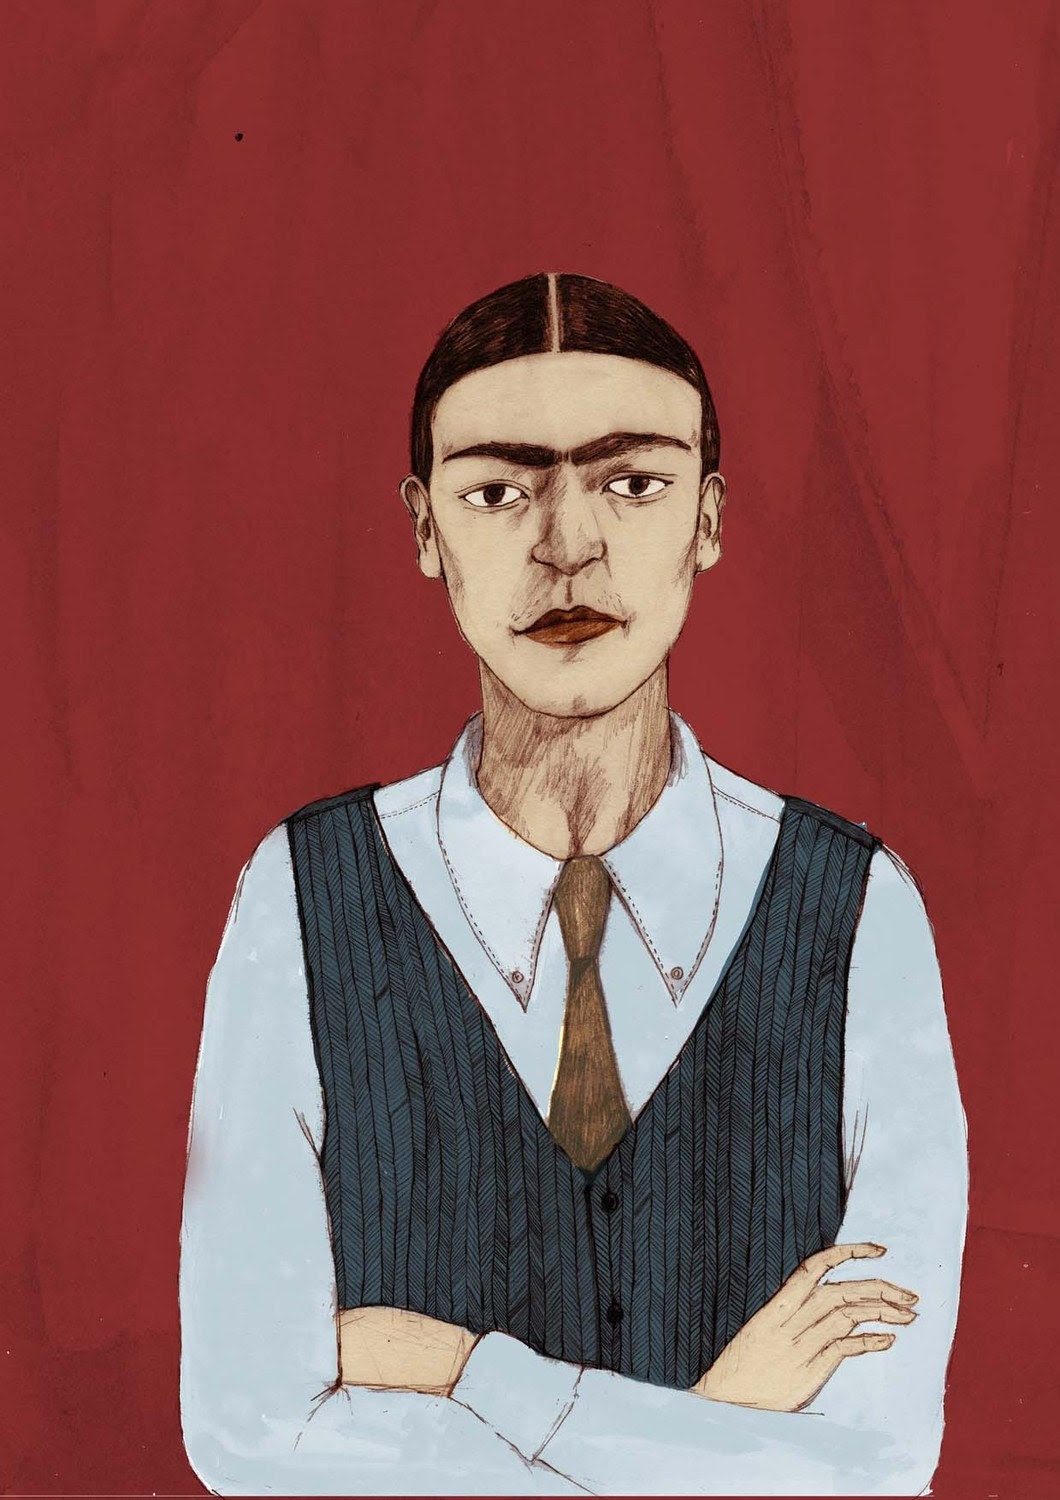 Frida Kahlo 'Androgyny' Limited Edition A4 Giclee Print by Bett Norris